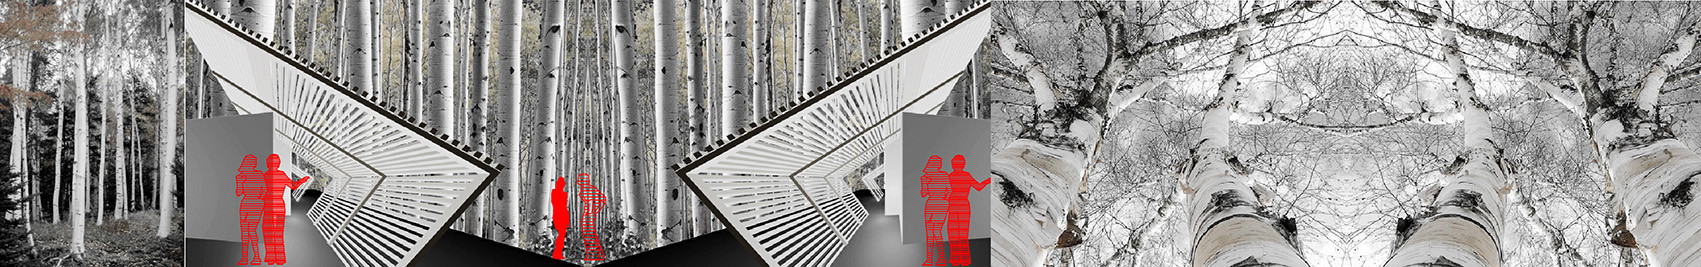 studio db ai house for her_dwelling of 44 birches  (8)